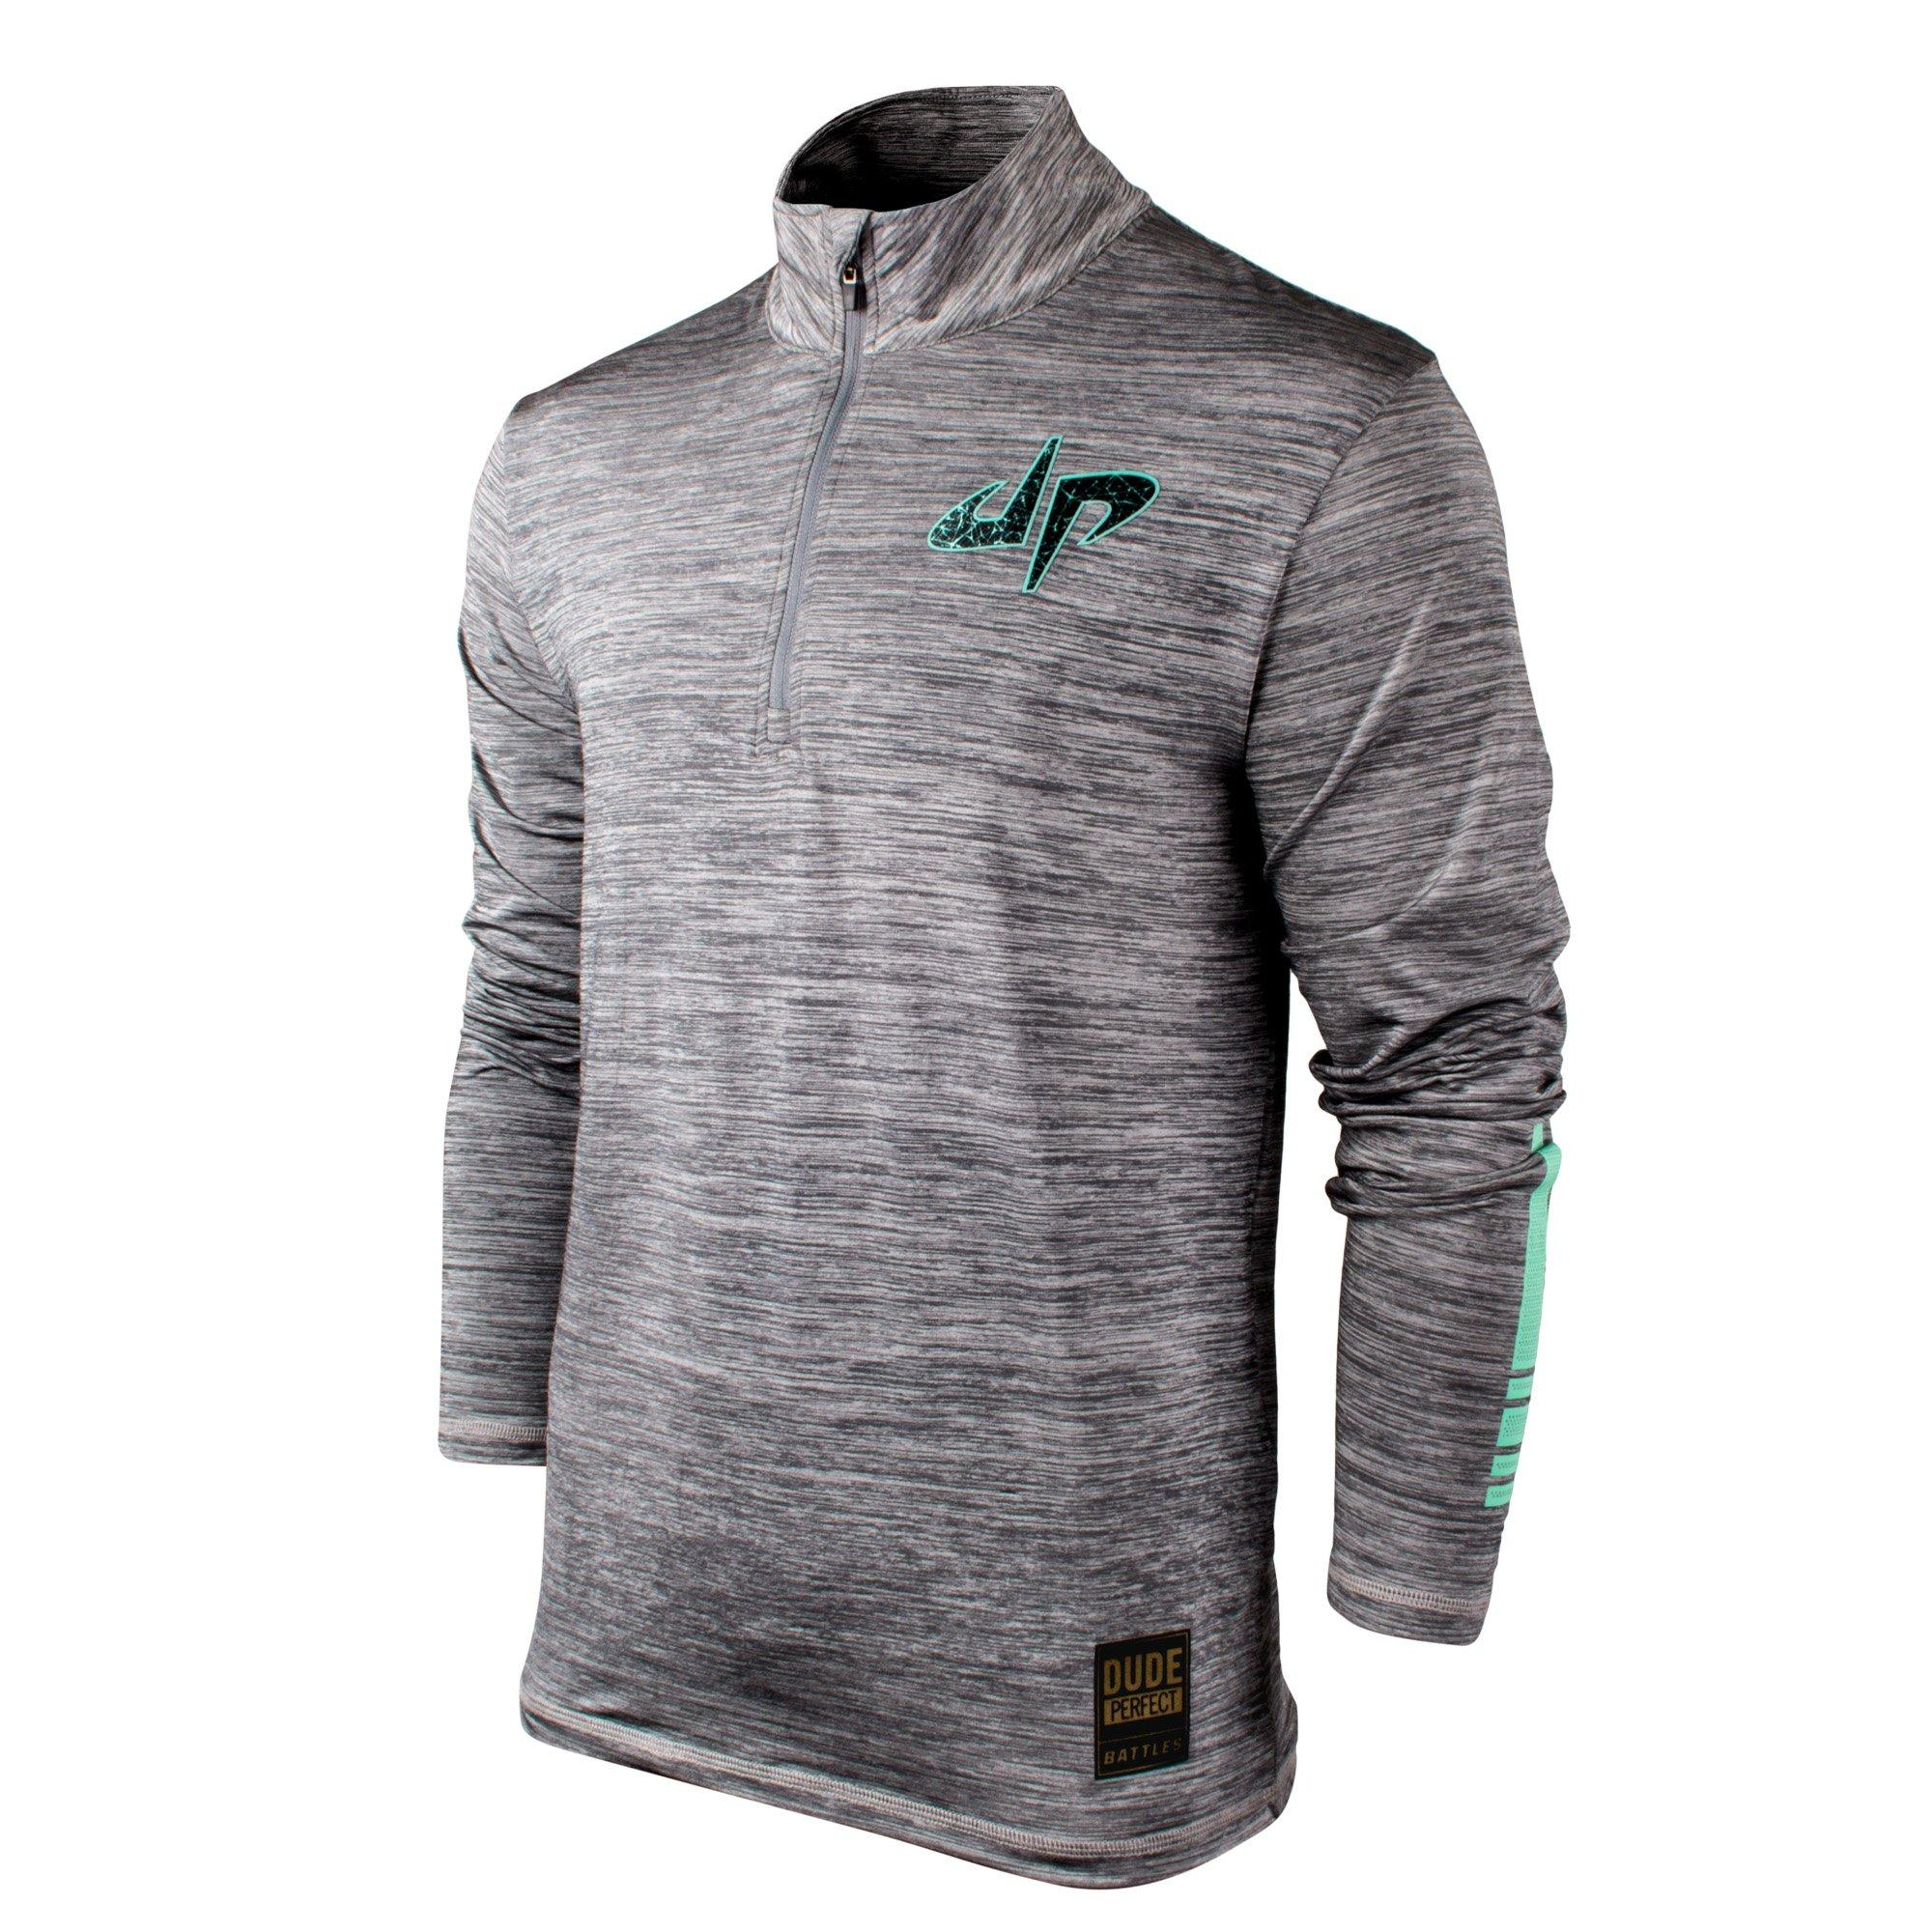 Rivalry Half Zip Pullover Top